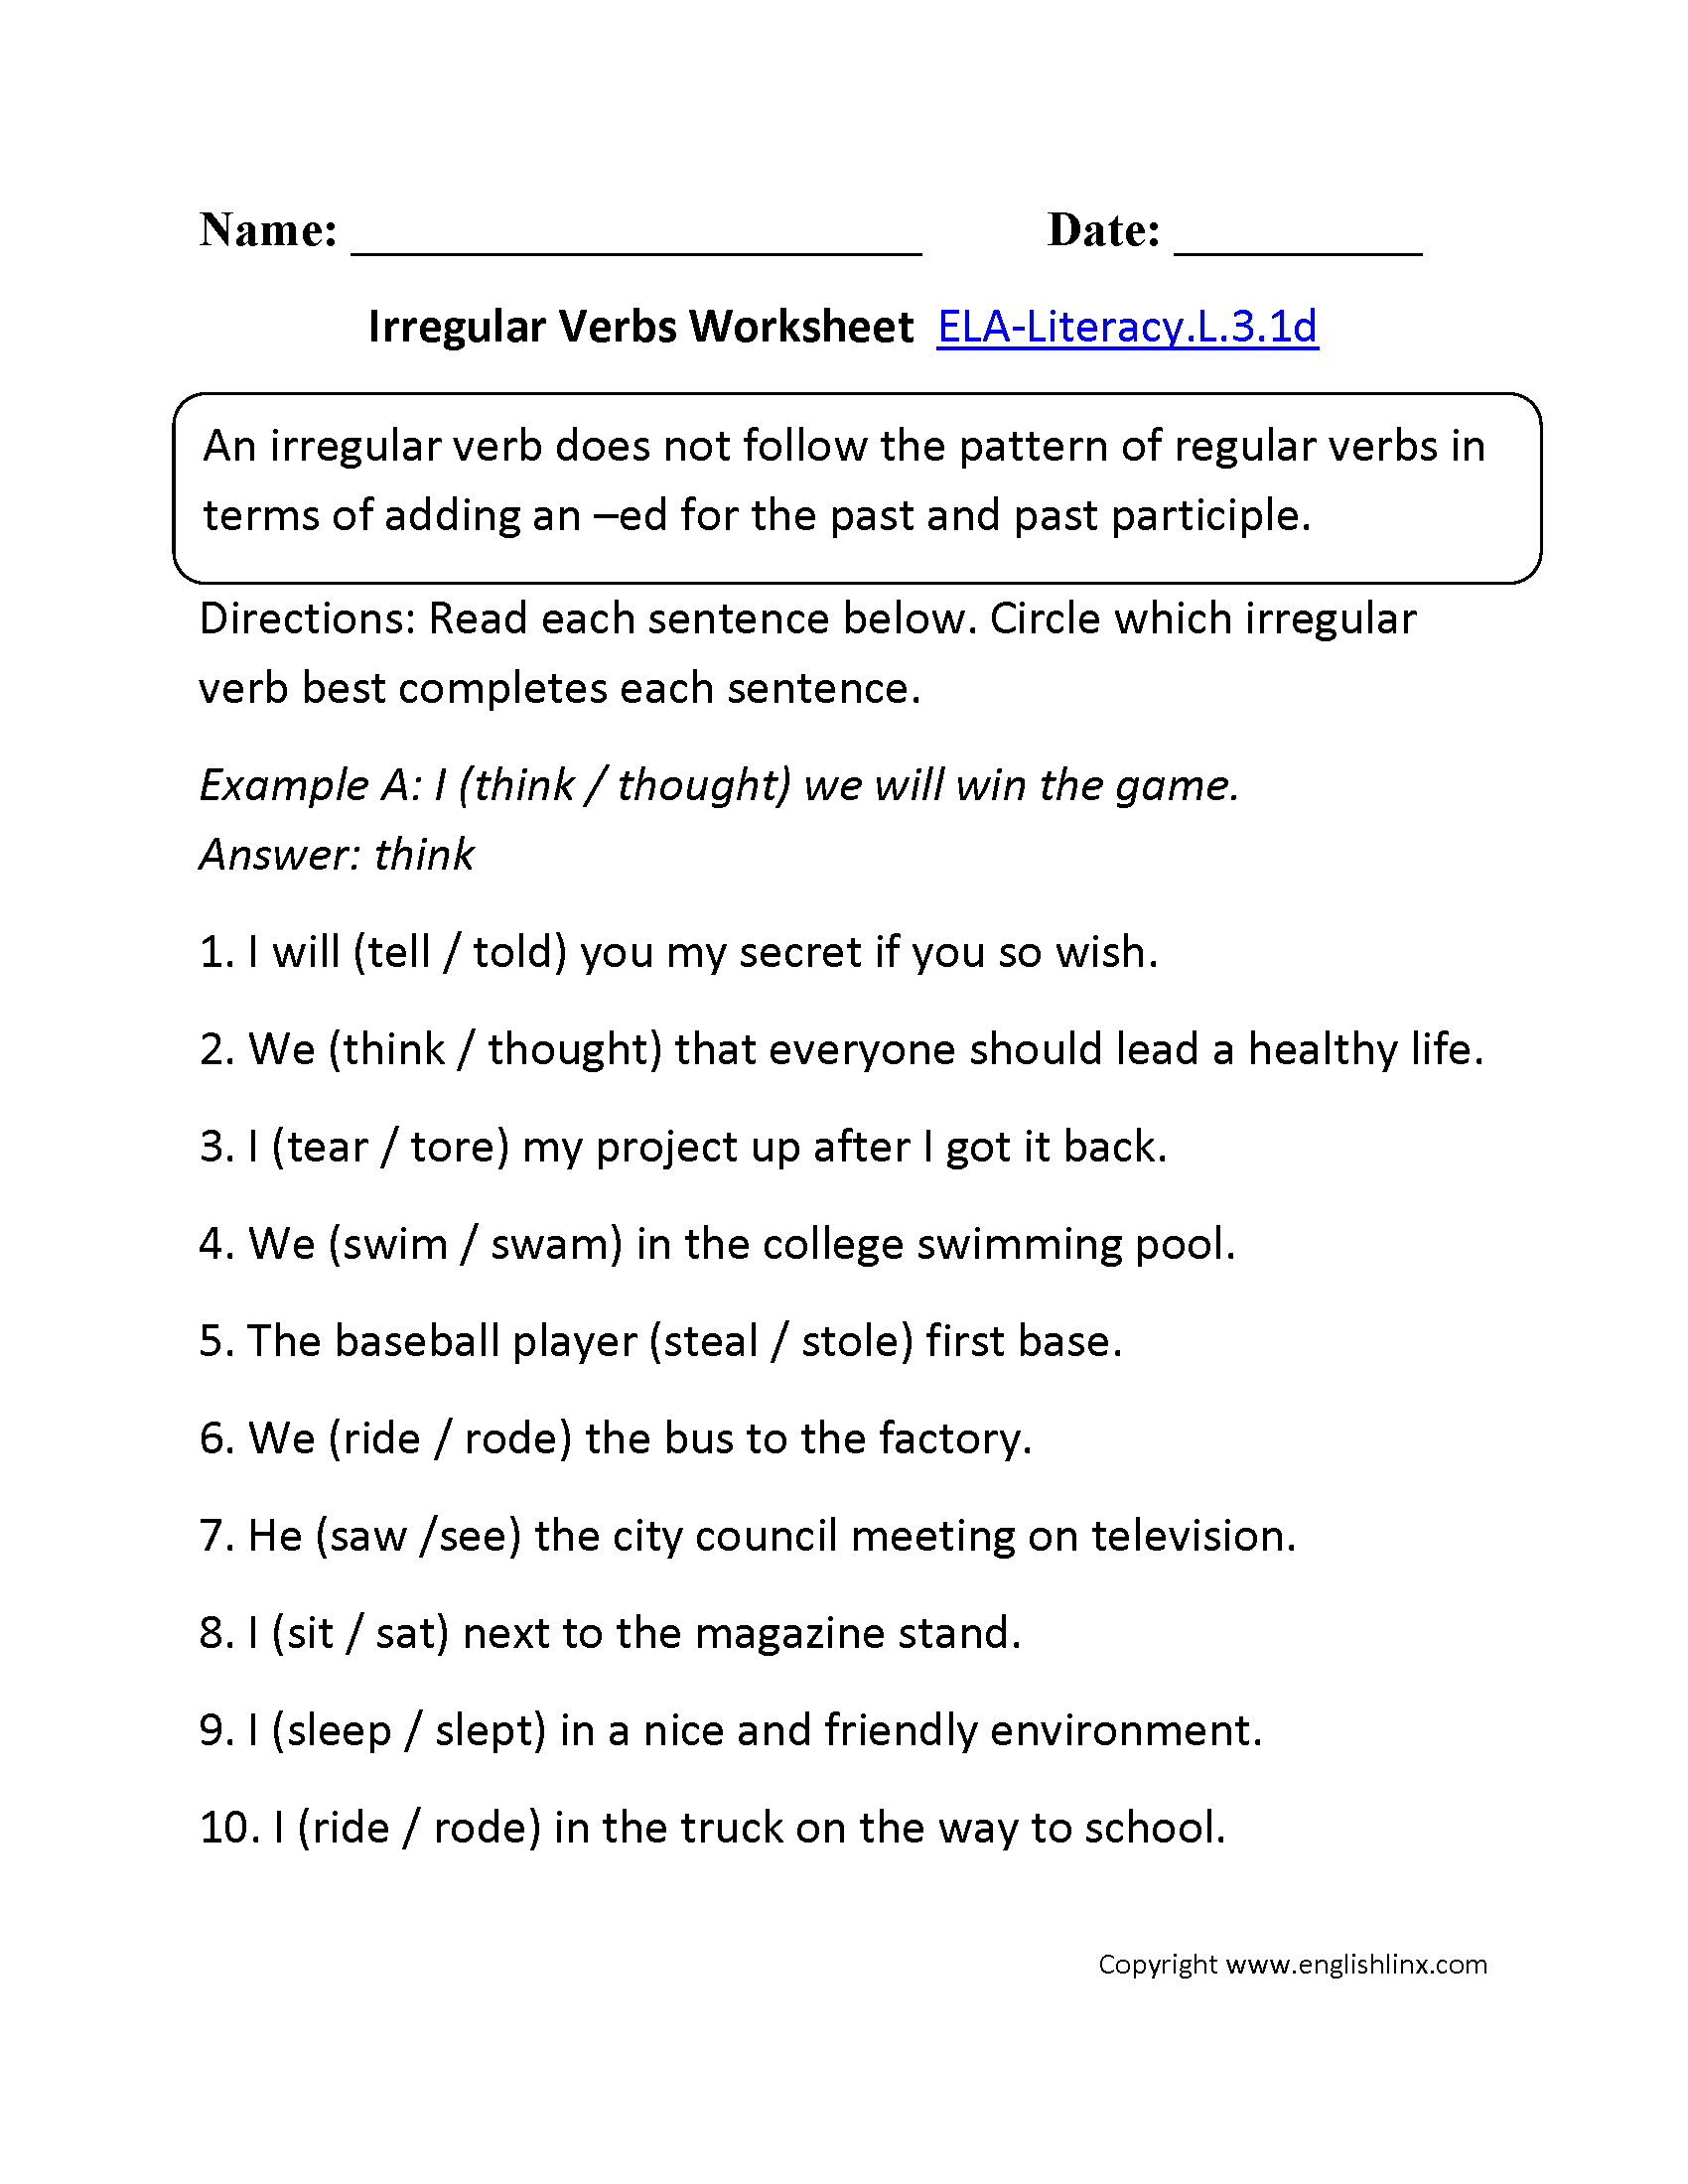 Worksheets Verb Worksheets 3rd Grade 3rd grade common core language worksheets irregular verbs worksheet 1 ela literacy l 3 1d worksheet